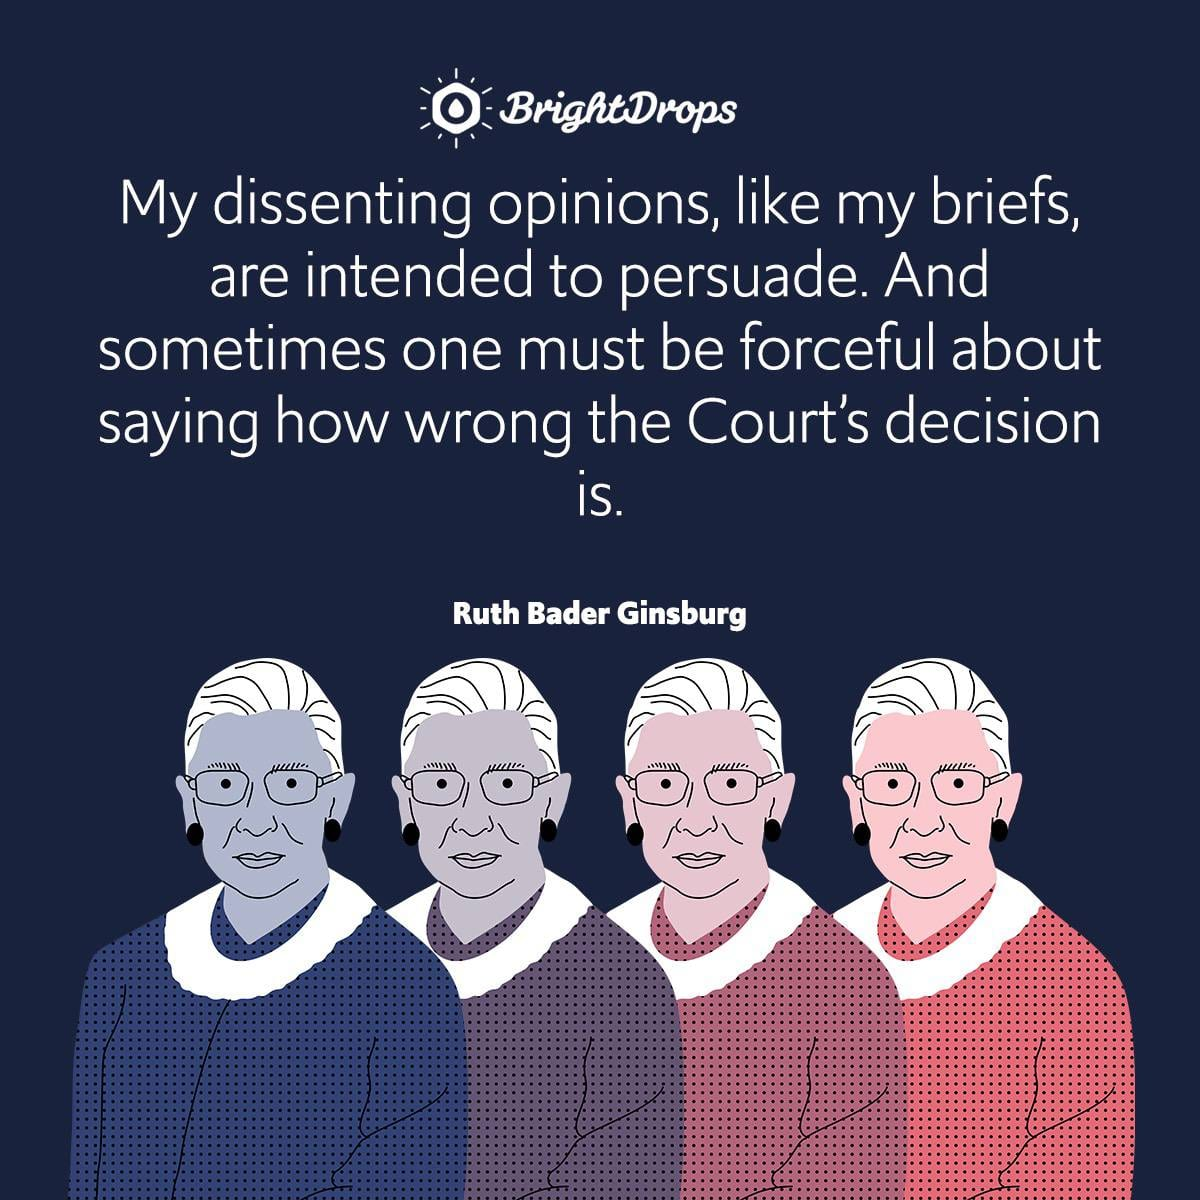 My dissenting opinions, like my briefs, are intended to persuade. And sometimes one must be forceful about saying how wrong the Court's decision is.